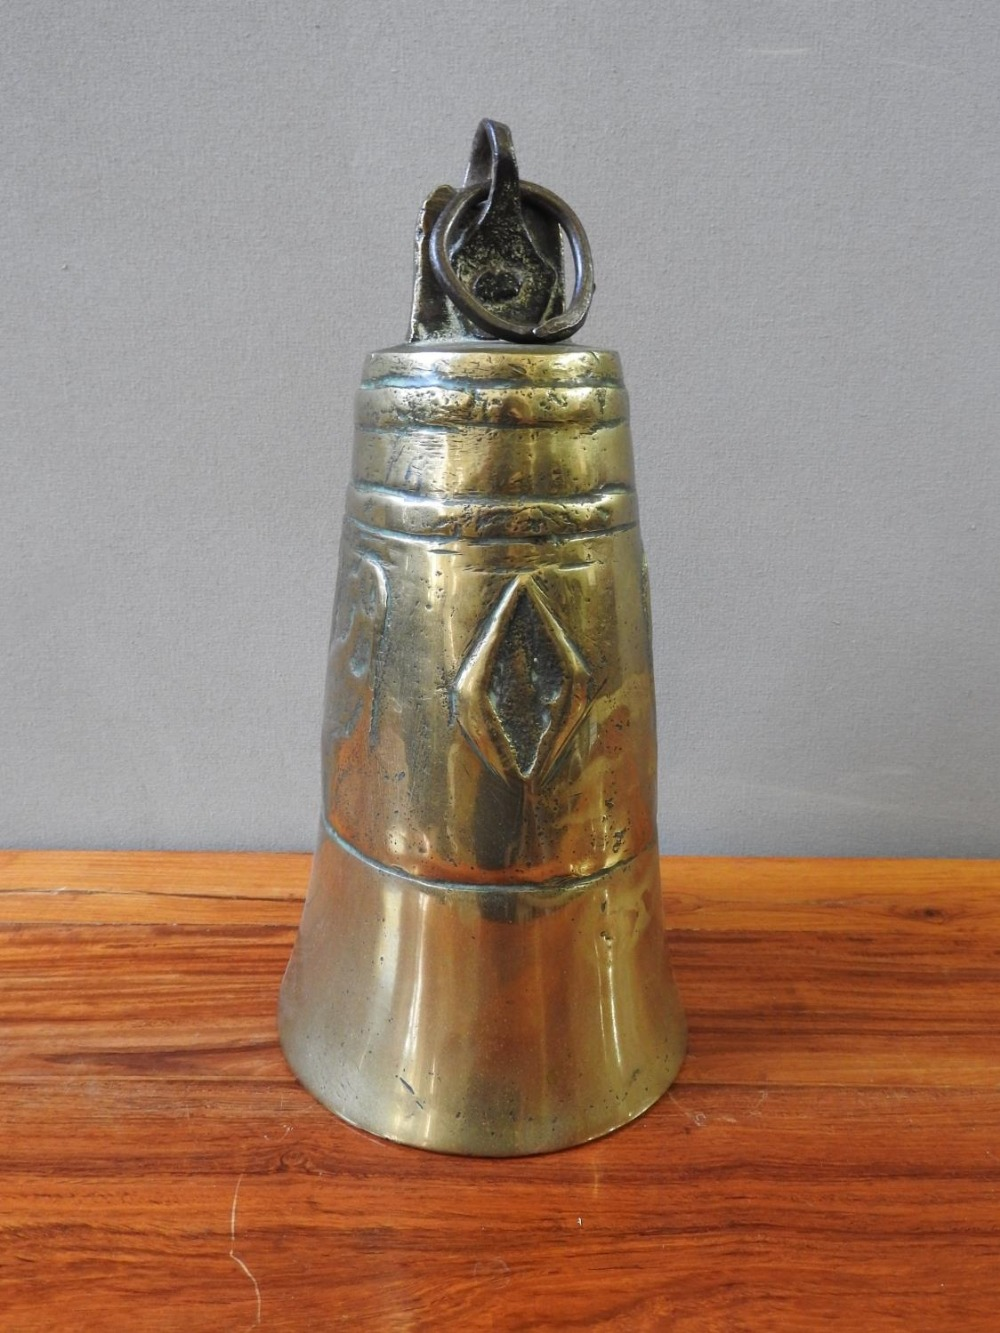 LARGE BRASS BELL 19TH CENTURY 27cm high; together with a SMALL INDIAN BRASS STAMP, 19TH CENTUR - Image 2 of 2